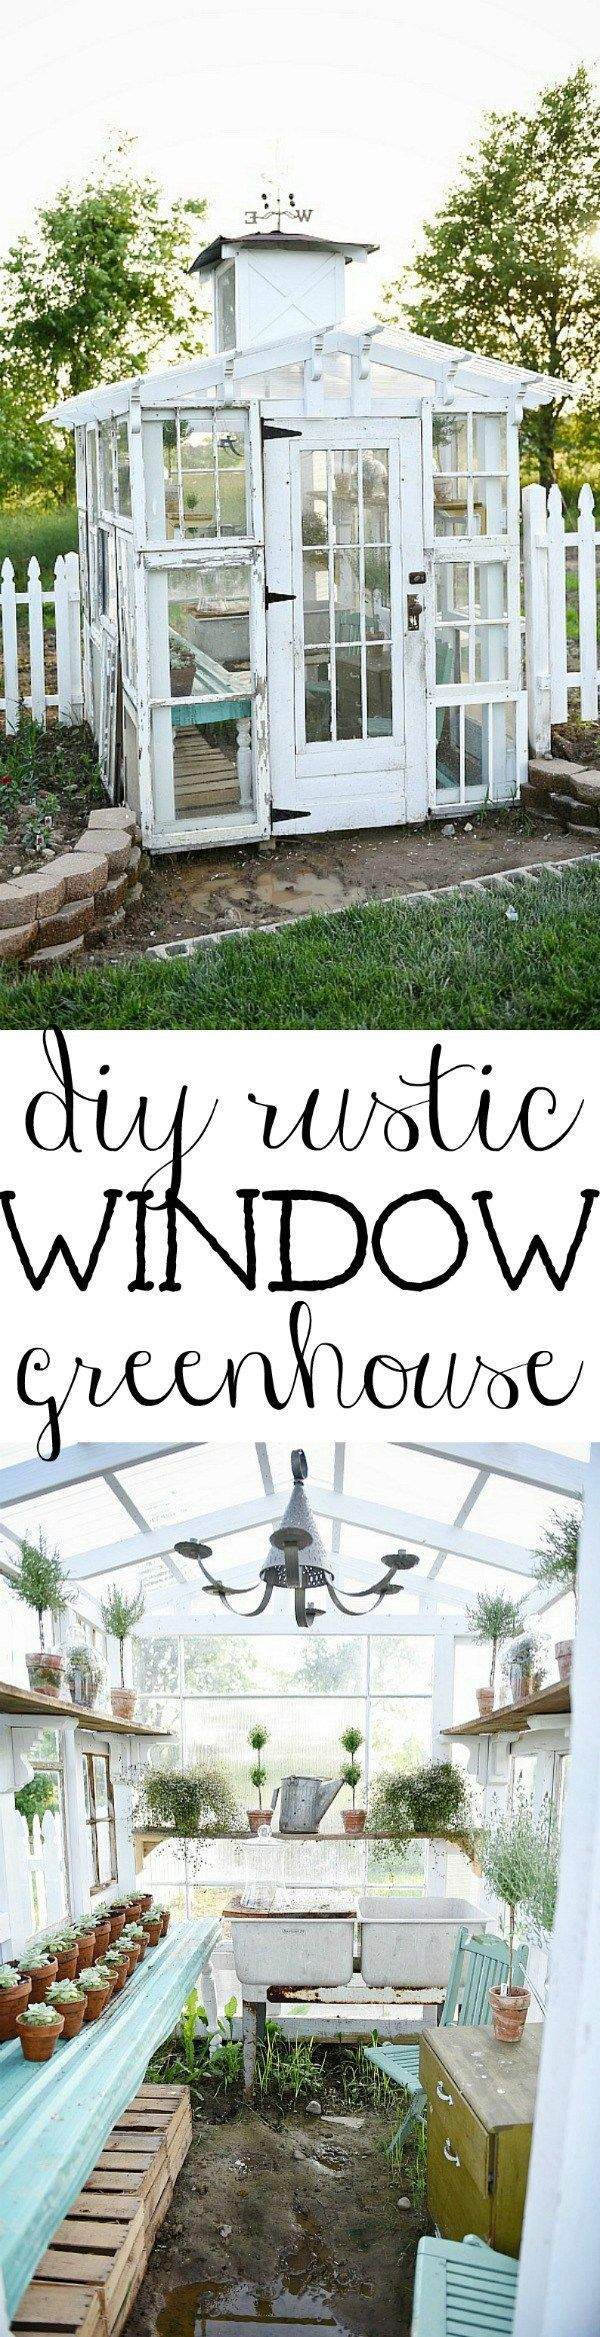 DIY Window Greenhouse -